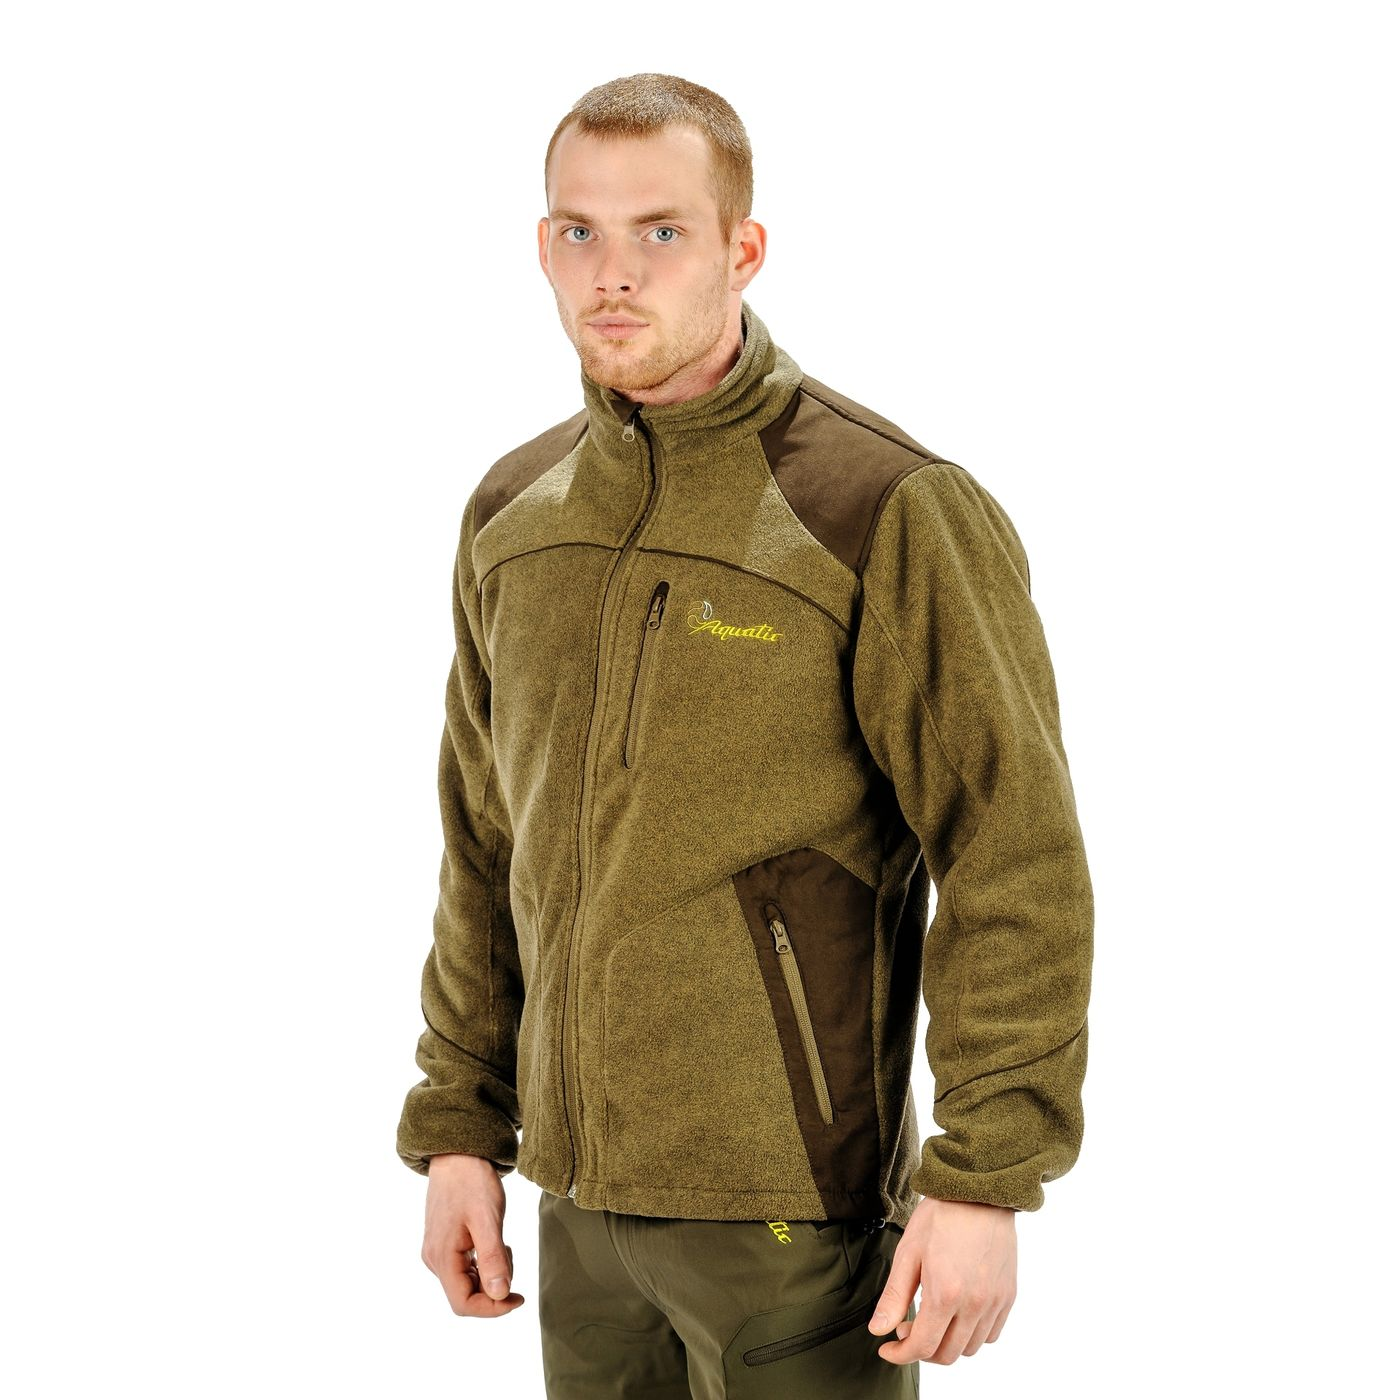 Fleece Jacket Aquatic Kf-01, Fishing Logo Kf-01 R L